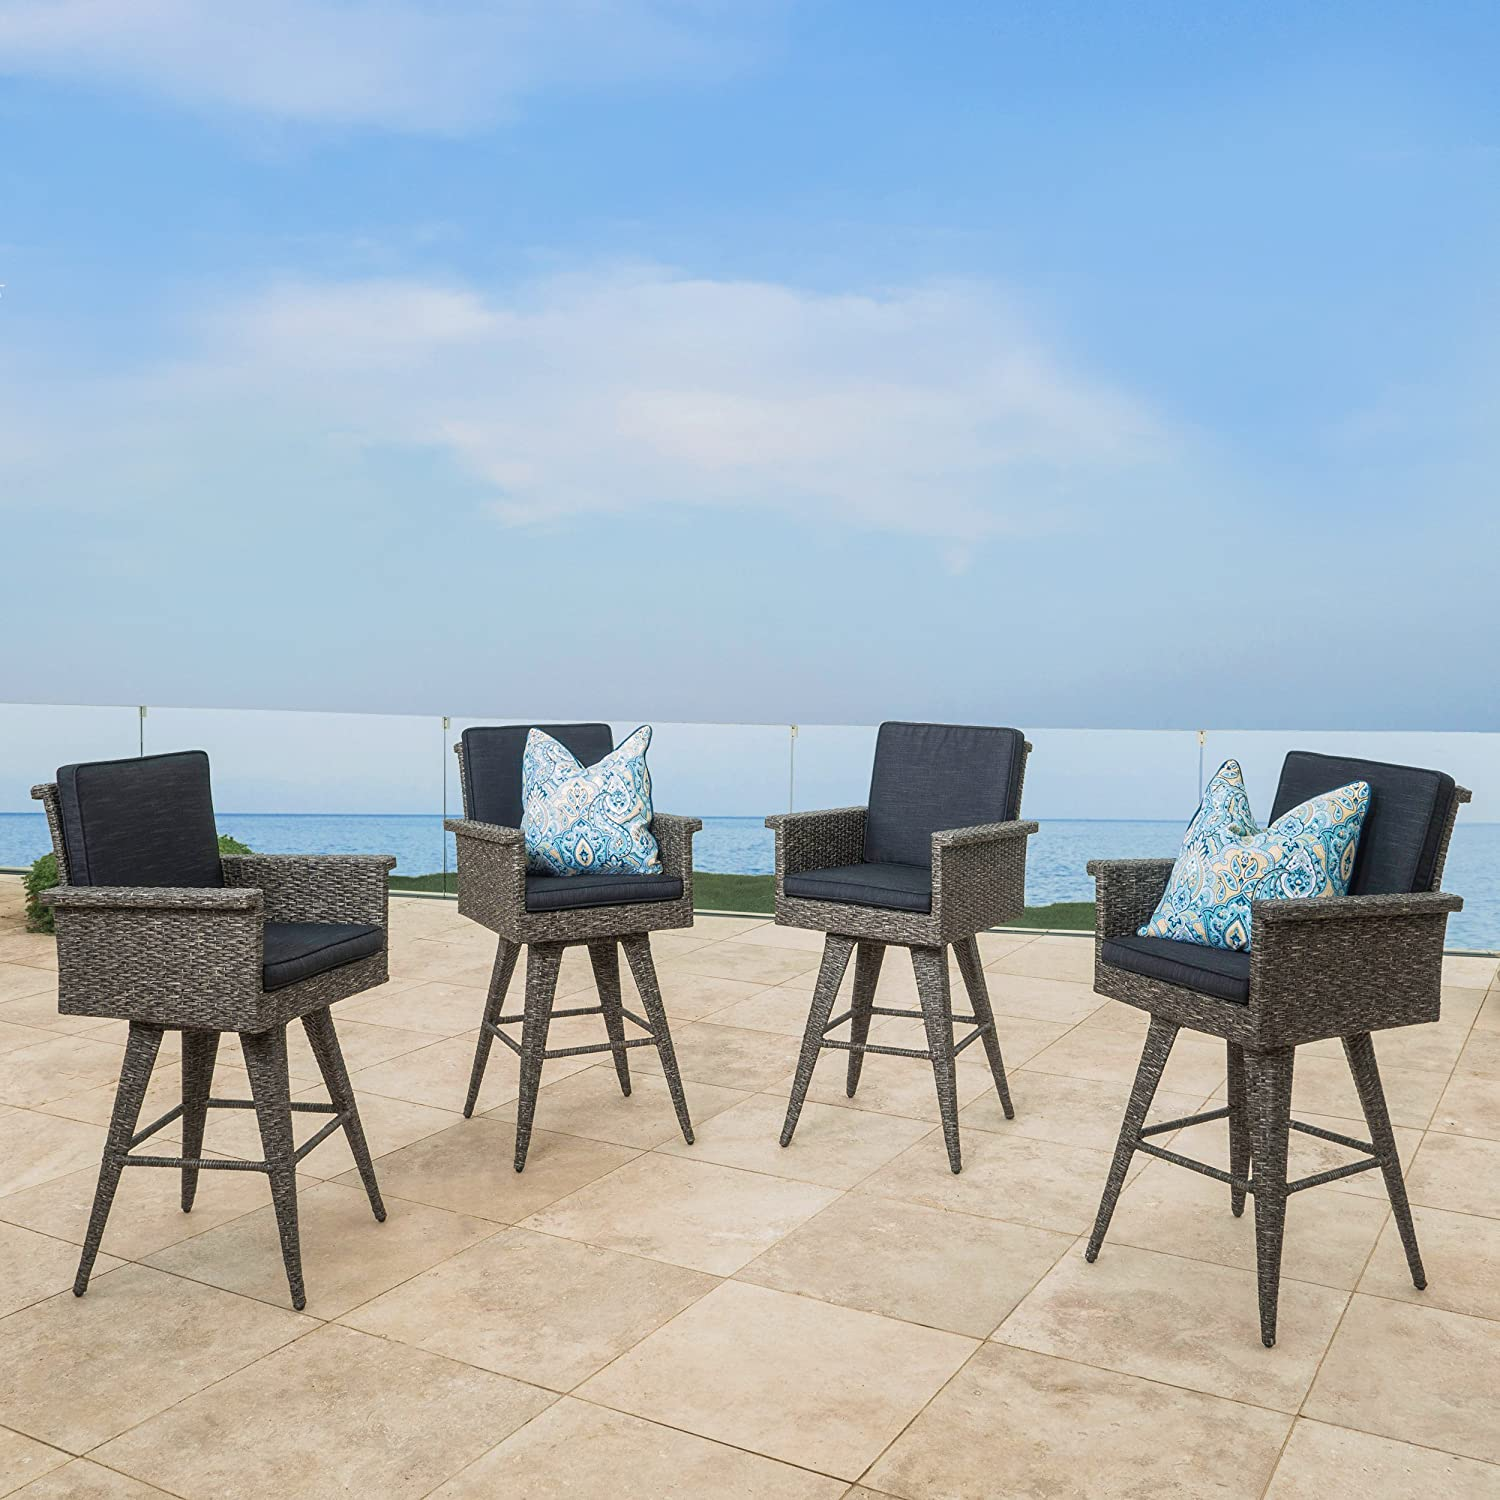 christopher knight home puerta grey outdoor wicker sofa set. Amazon.com : Puerta Outdoor Wicker Barstool With Cushions (Set Of 4) By Christopher Knight Home Garden \u0026 Grey Sofa Set